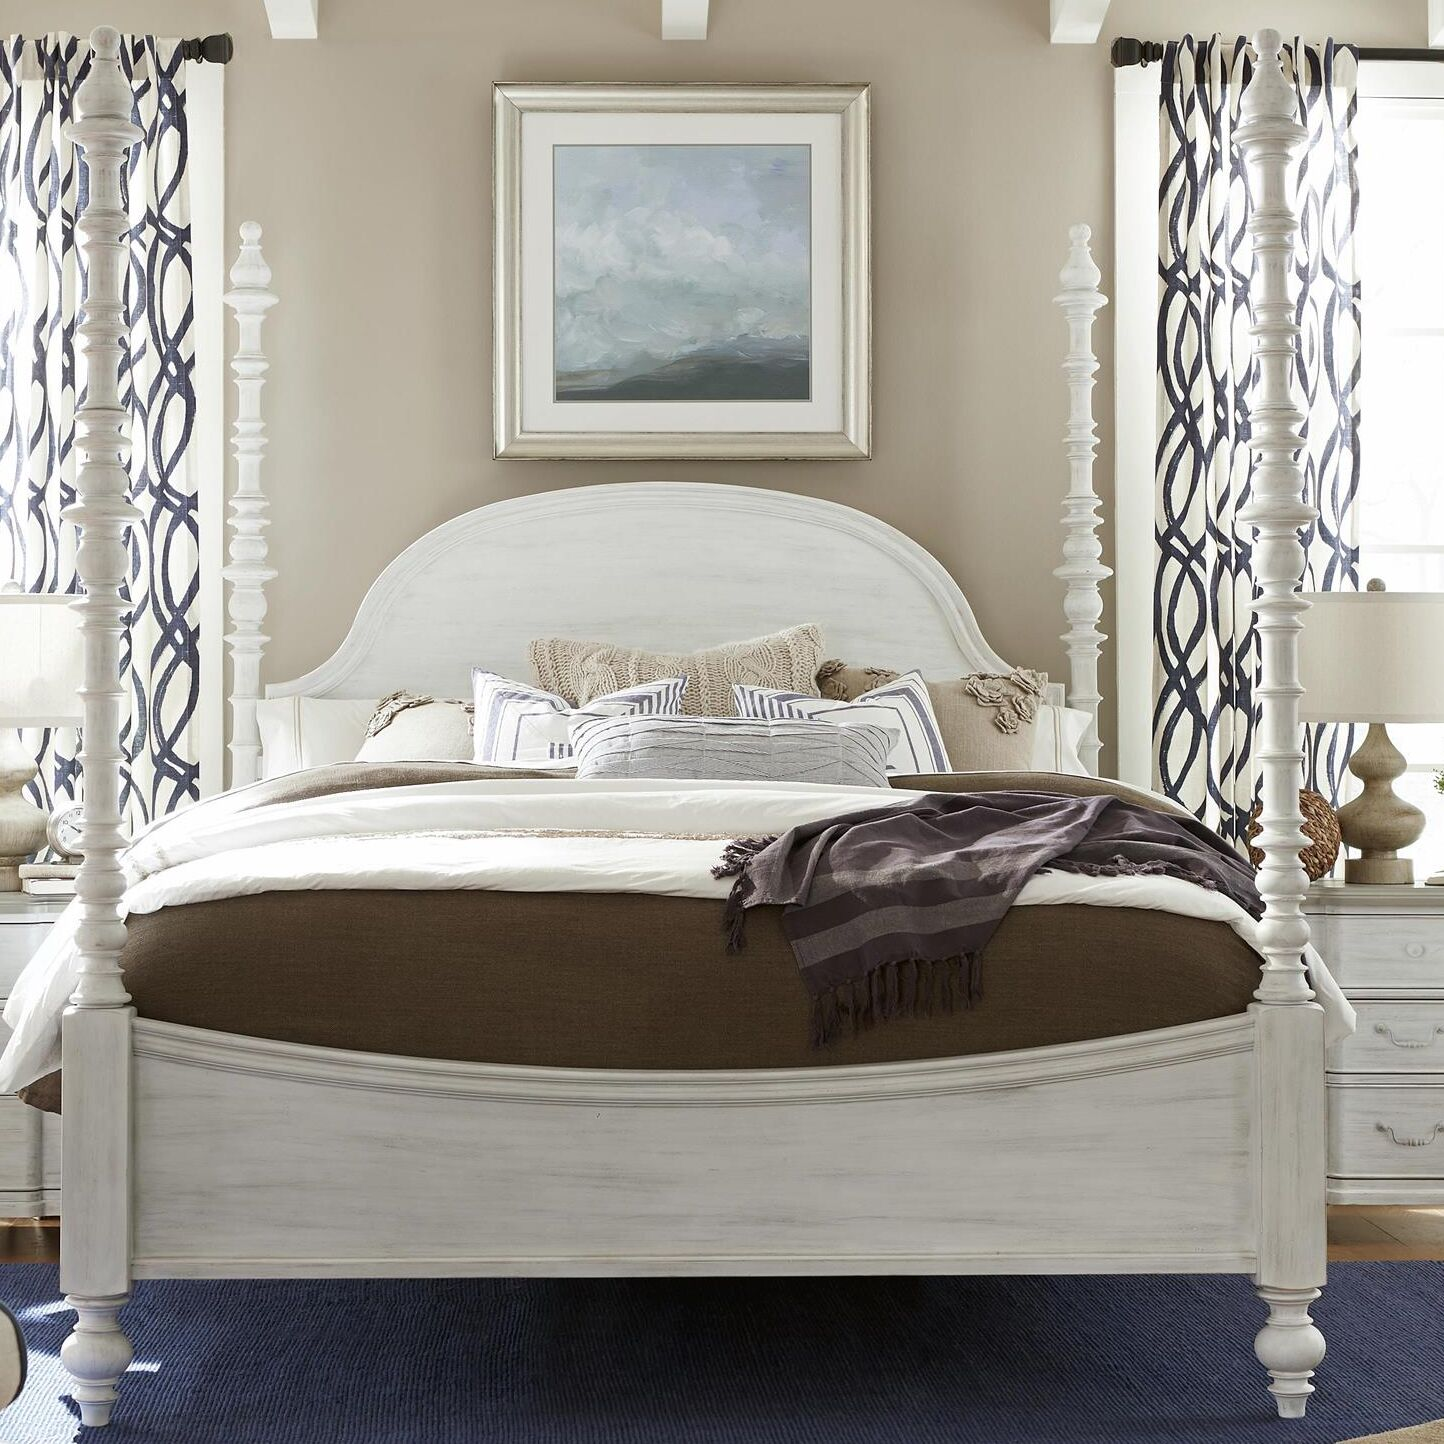 Dogwood Panel Headboard Size: King, Color: Blossom White